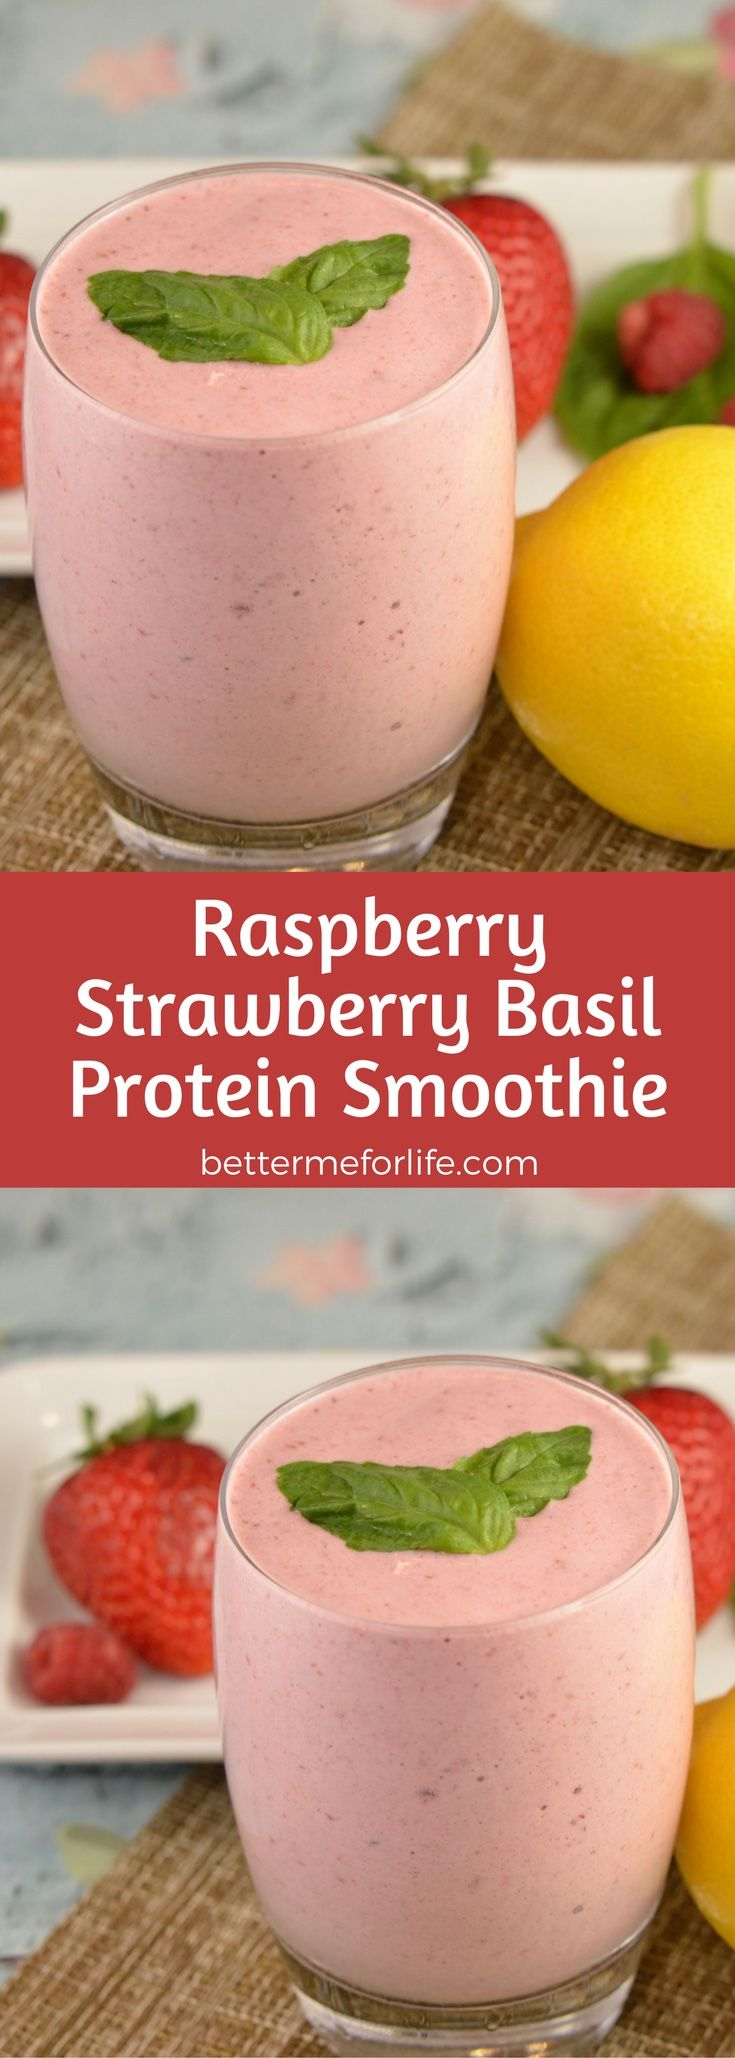 The flavors of summer are in this raspberry strawberry basil protein smoothie. Packed with antioxidant and anti-inflammatory nutrients the is a summer must-have! Recipe at BetterMeforLife.com | protein smoothie recipes | protein smoothies | healthy protein smoothies | protein smoothies for weight loss | protein smoothie recipes | protein smoothie recipes weight loss | protein smoothie recipes diet #proteinsmoothies #proteinsmoothierecipes #proteinpowder #proteinsmoothie #protein_smoothie